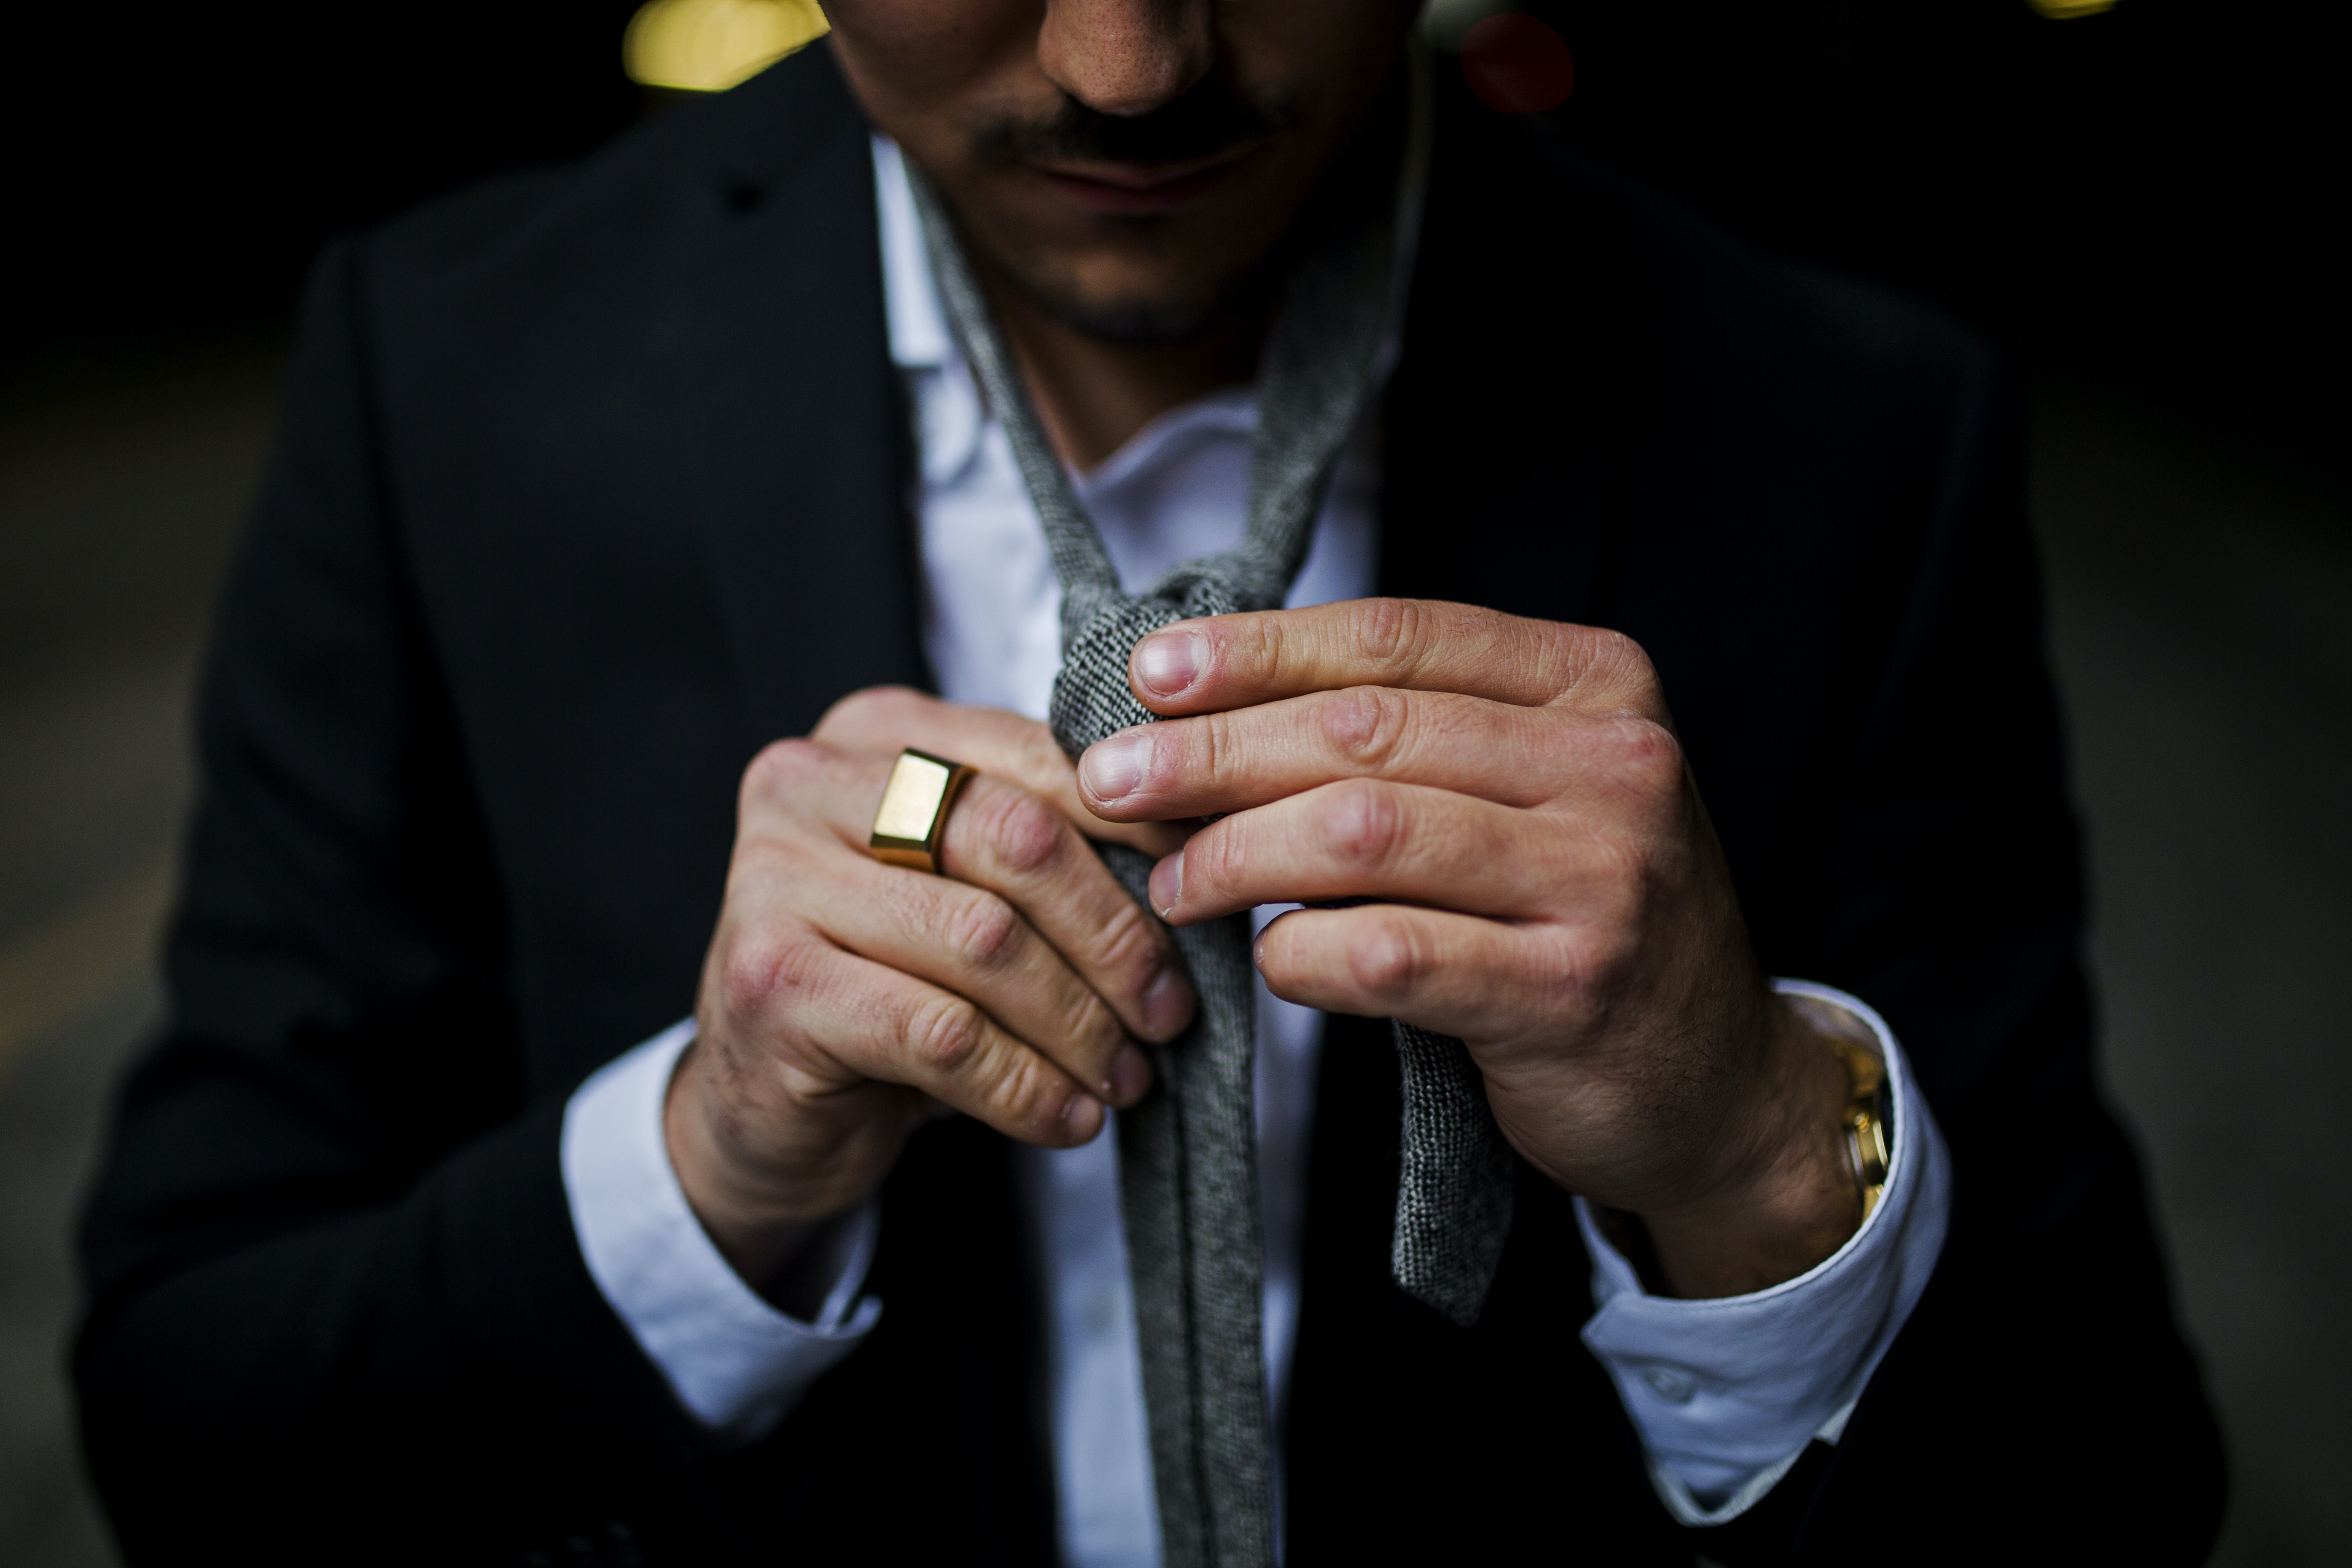 A man in a suit jacket tying his tie